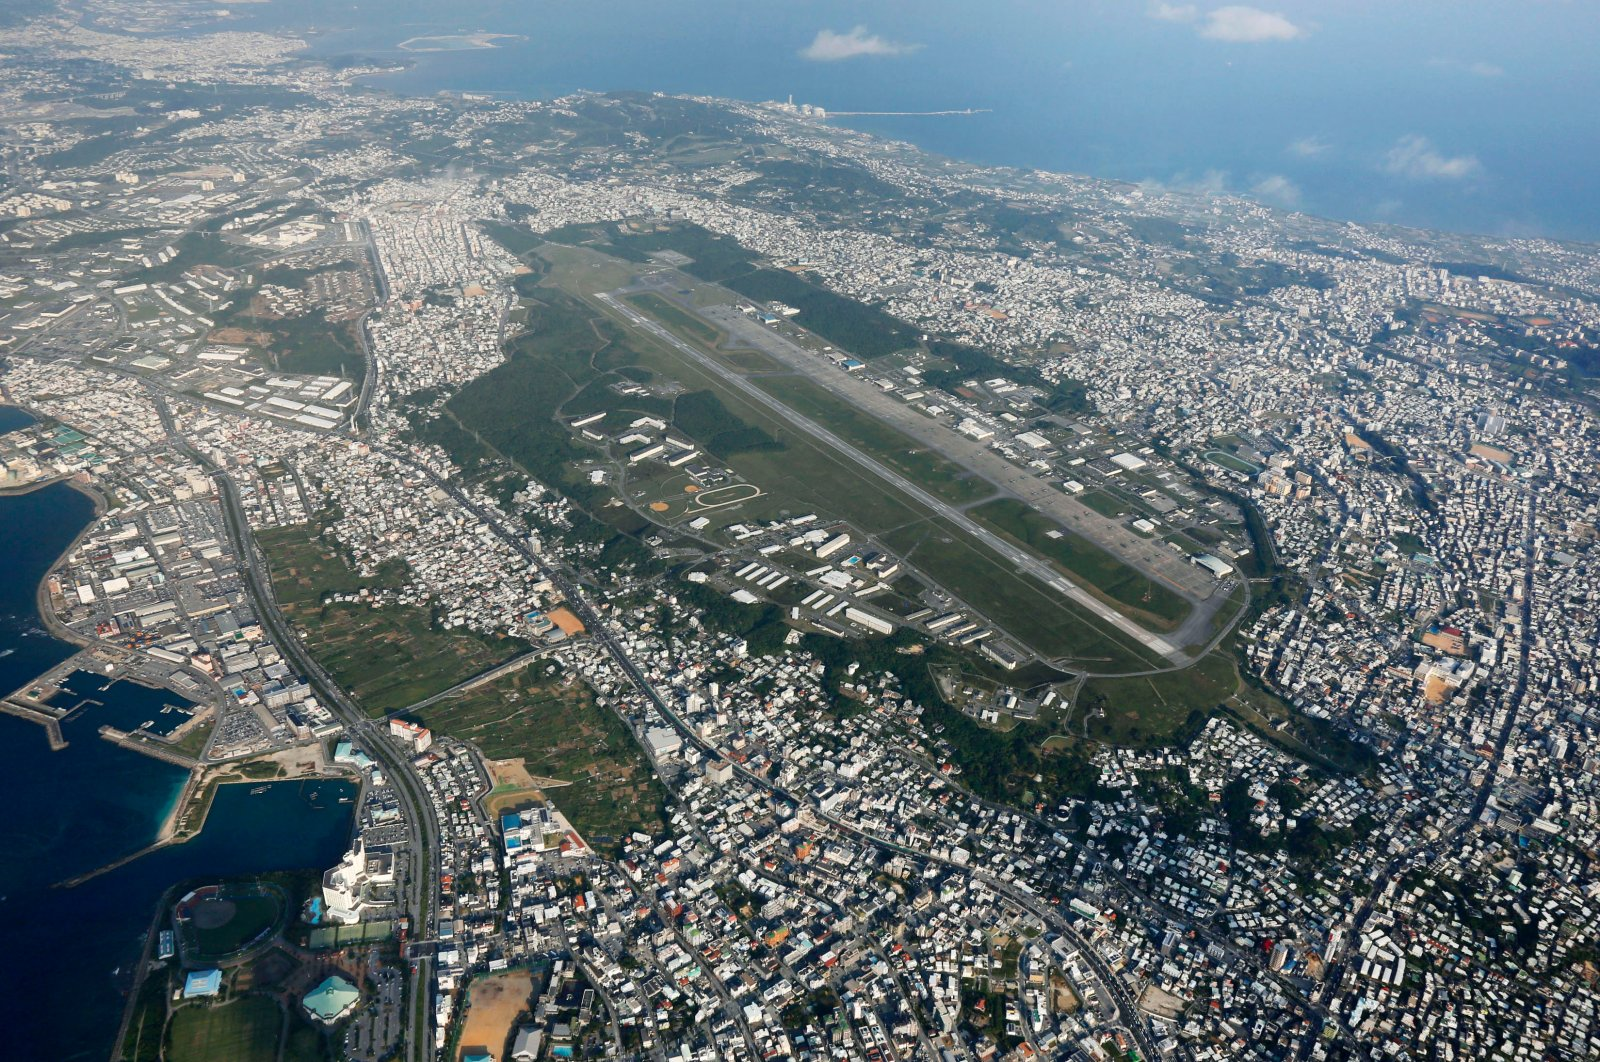 In this file photo U.S. Marine Corps Air Station Futenma in Ginowan, Okinawa, southern Japan, October 2015. (AP Photo)